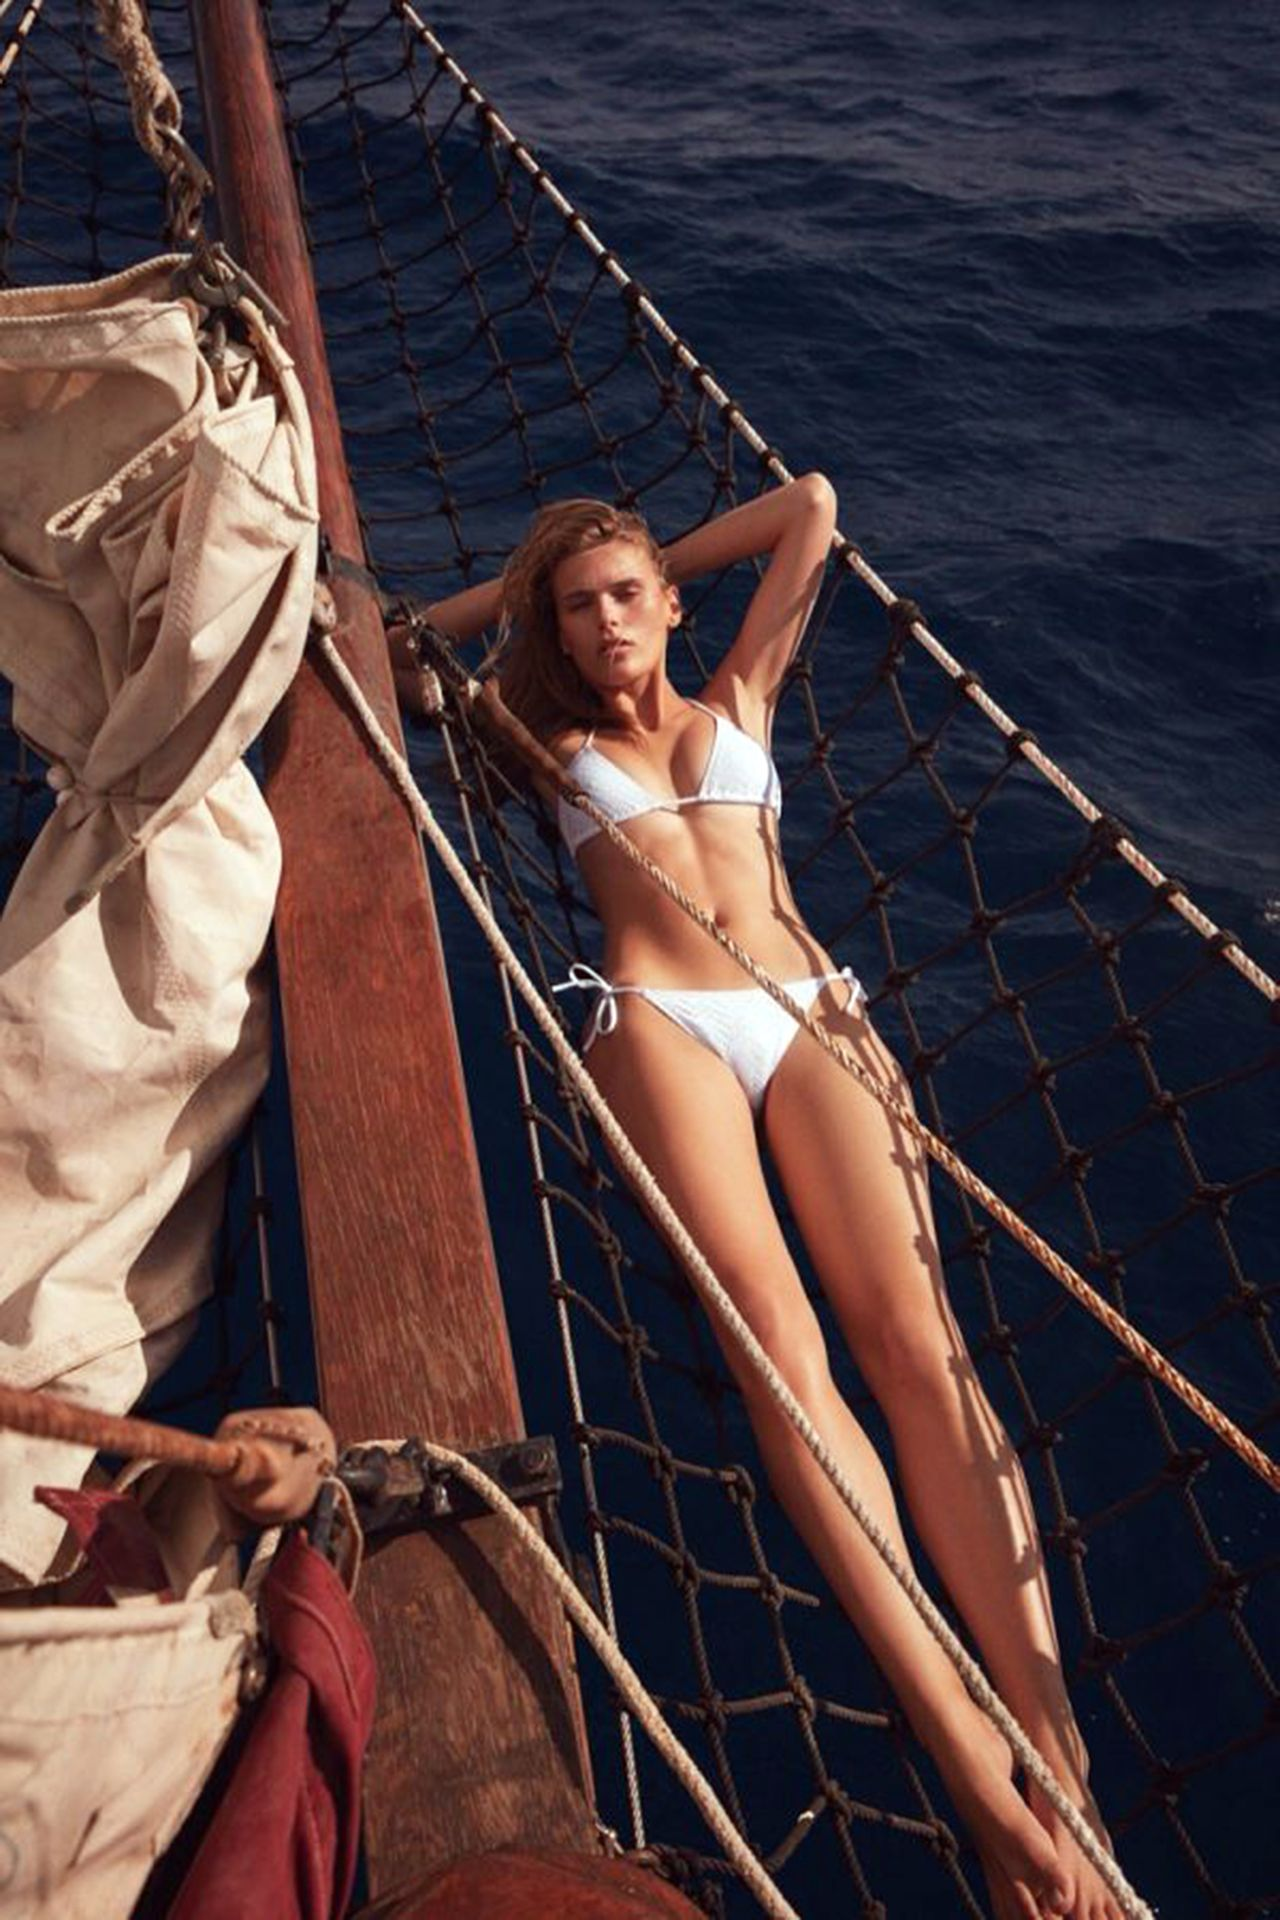 Madison Headrick Is In The Campaign Of The French Swimwear Brand Eres 0001